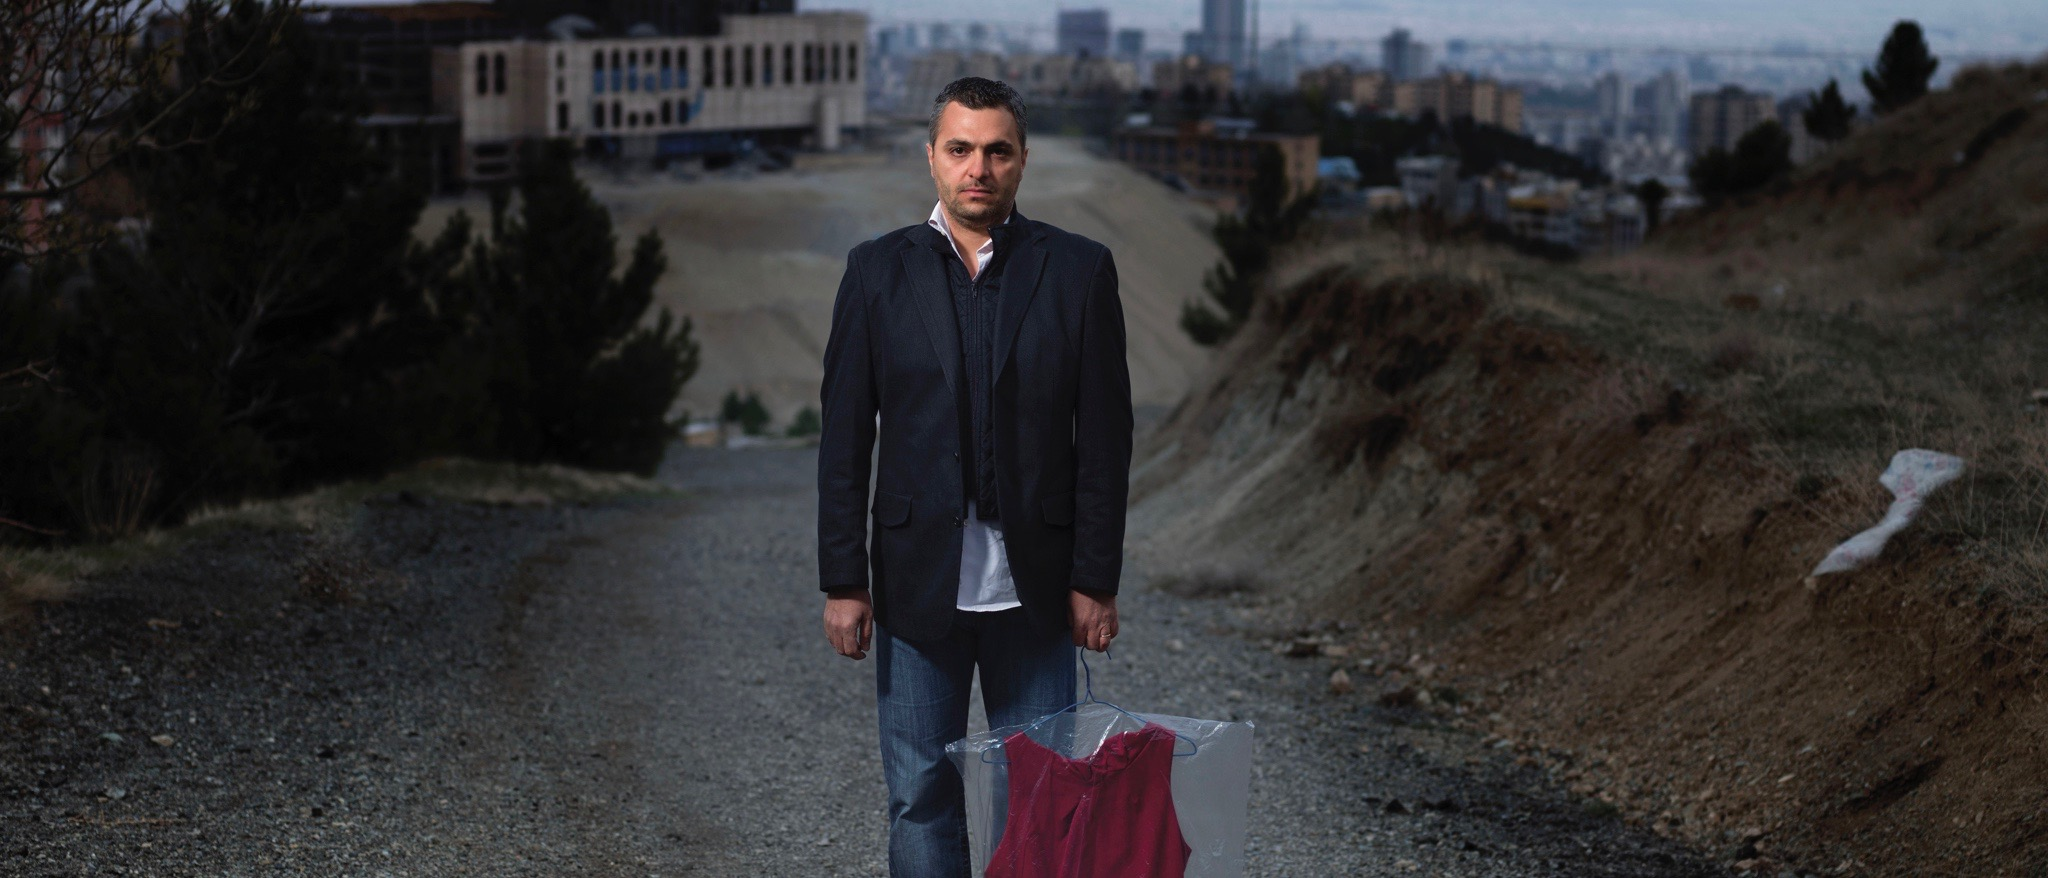 A man, standing in the middle of a gravel road, faces the viewer; in his left hand, he holds a crimson dress, wrapped in plastic, by its clothes hanger